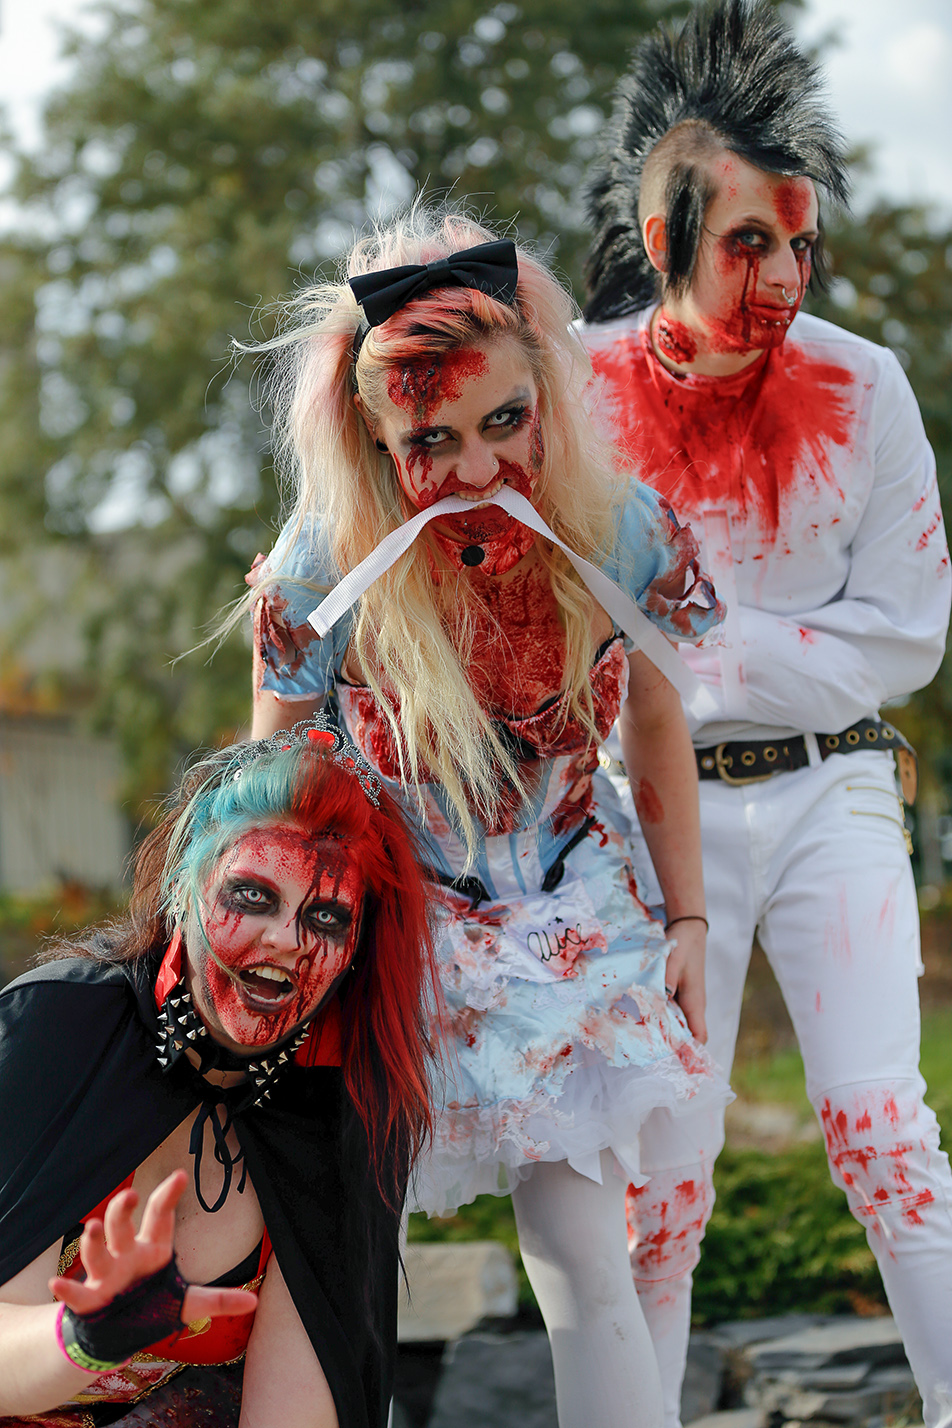 Zombie Apocalypse: Zombie aficionados put on their best costumes to participate in the annual zombie walk in Calgary on Saturday, Oct. 12, 2013. Zombies Emily Young, Tianna Nason, and Benjamin Saville are ready to eat some brains. (Photo by Anthony Samson/The Press)